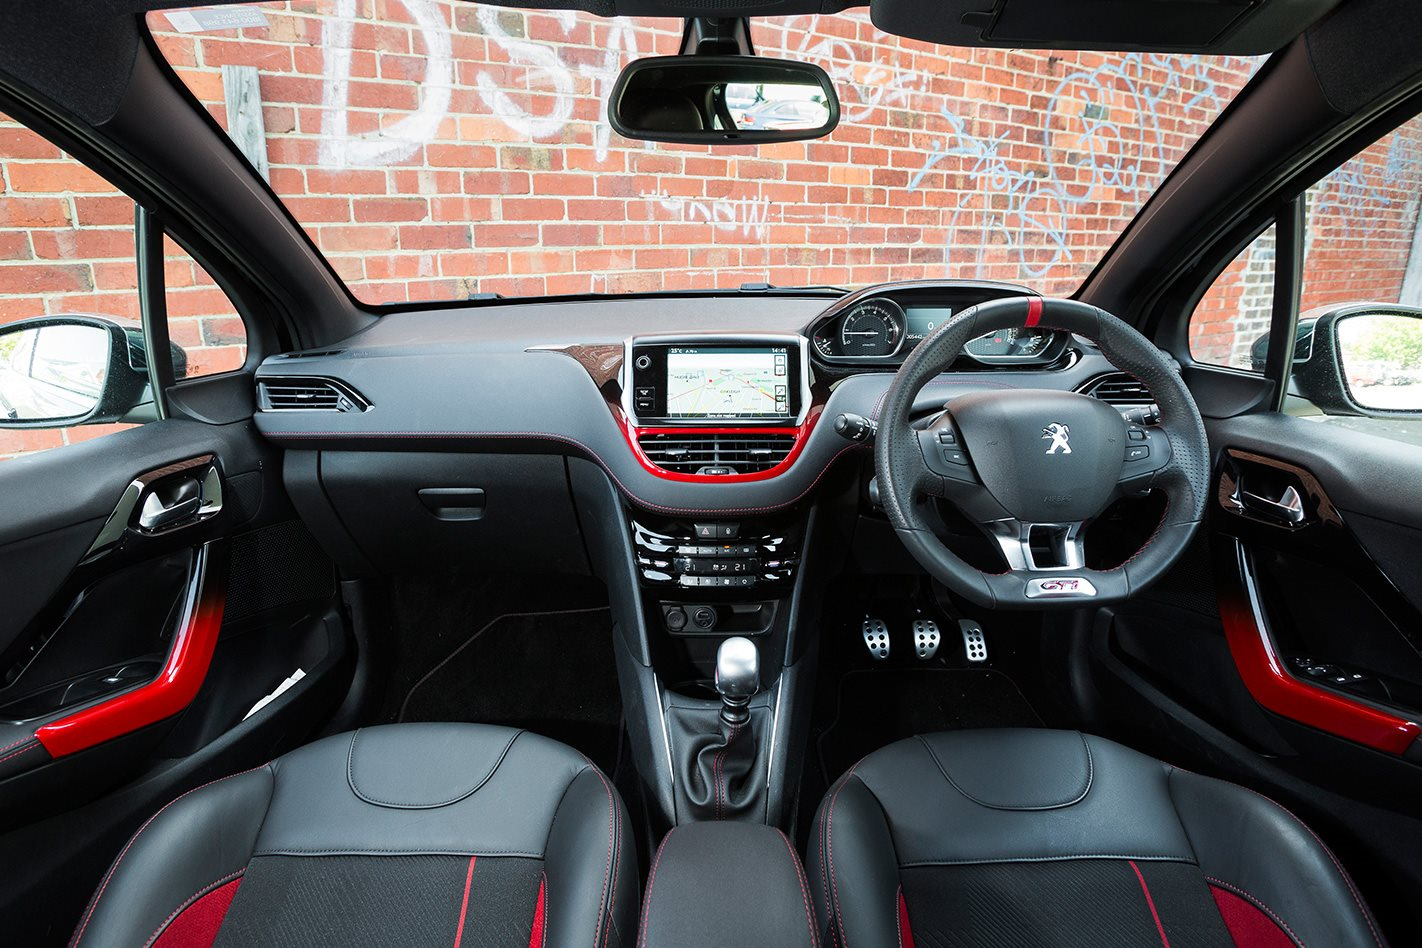 2014 peugeot 208 gti long term car review part 4 for Peugeot 208 interior 2017